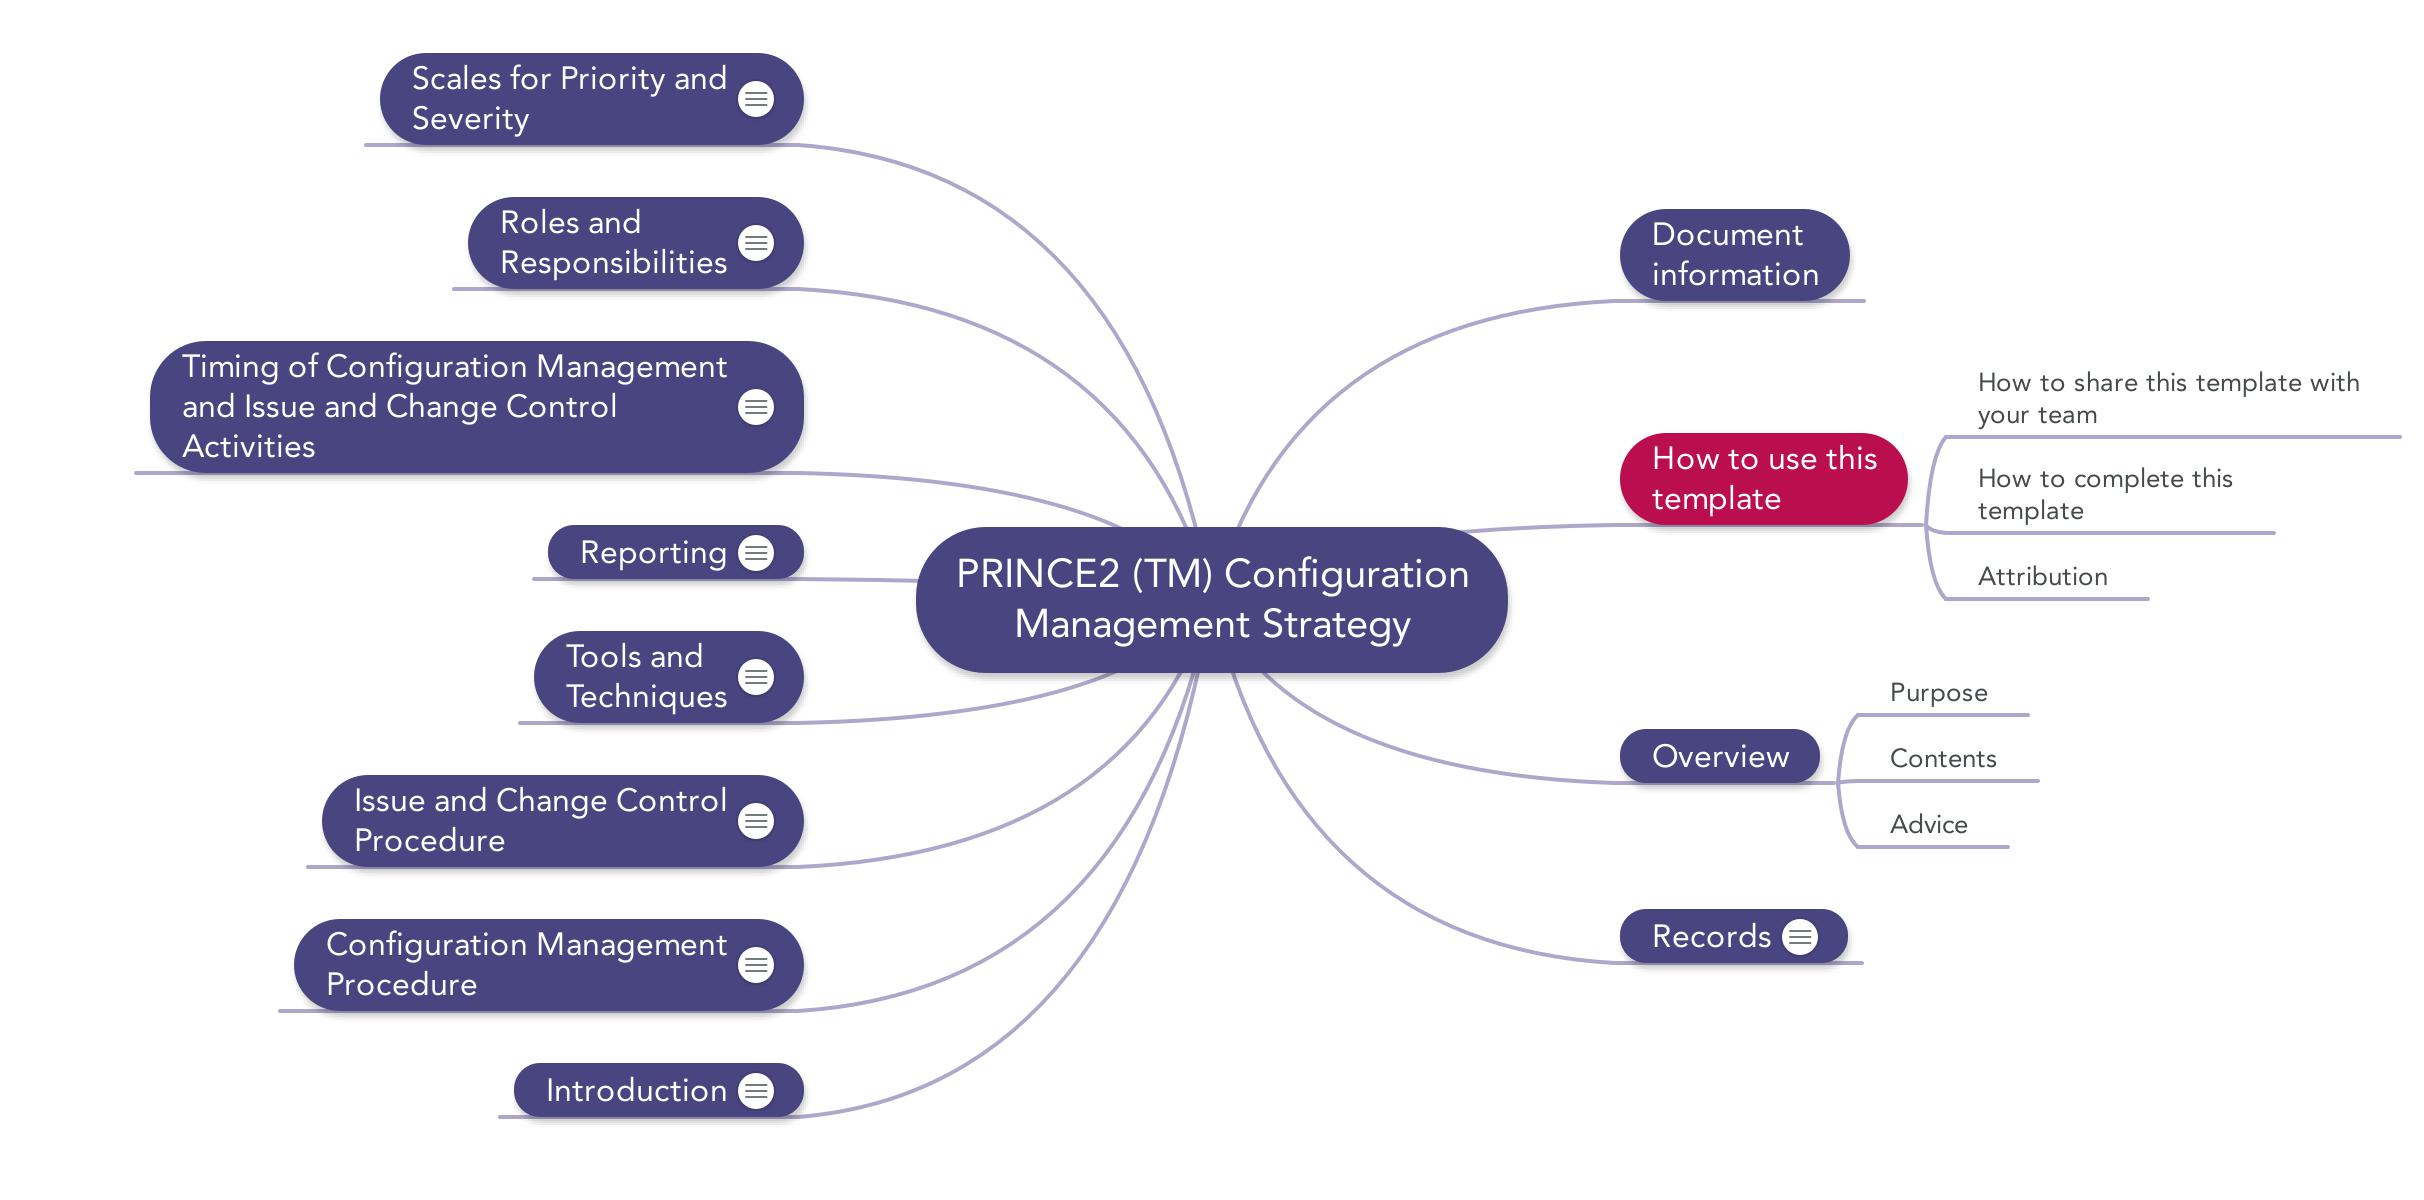 Prince2 Configuration Management Strategy Download template